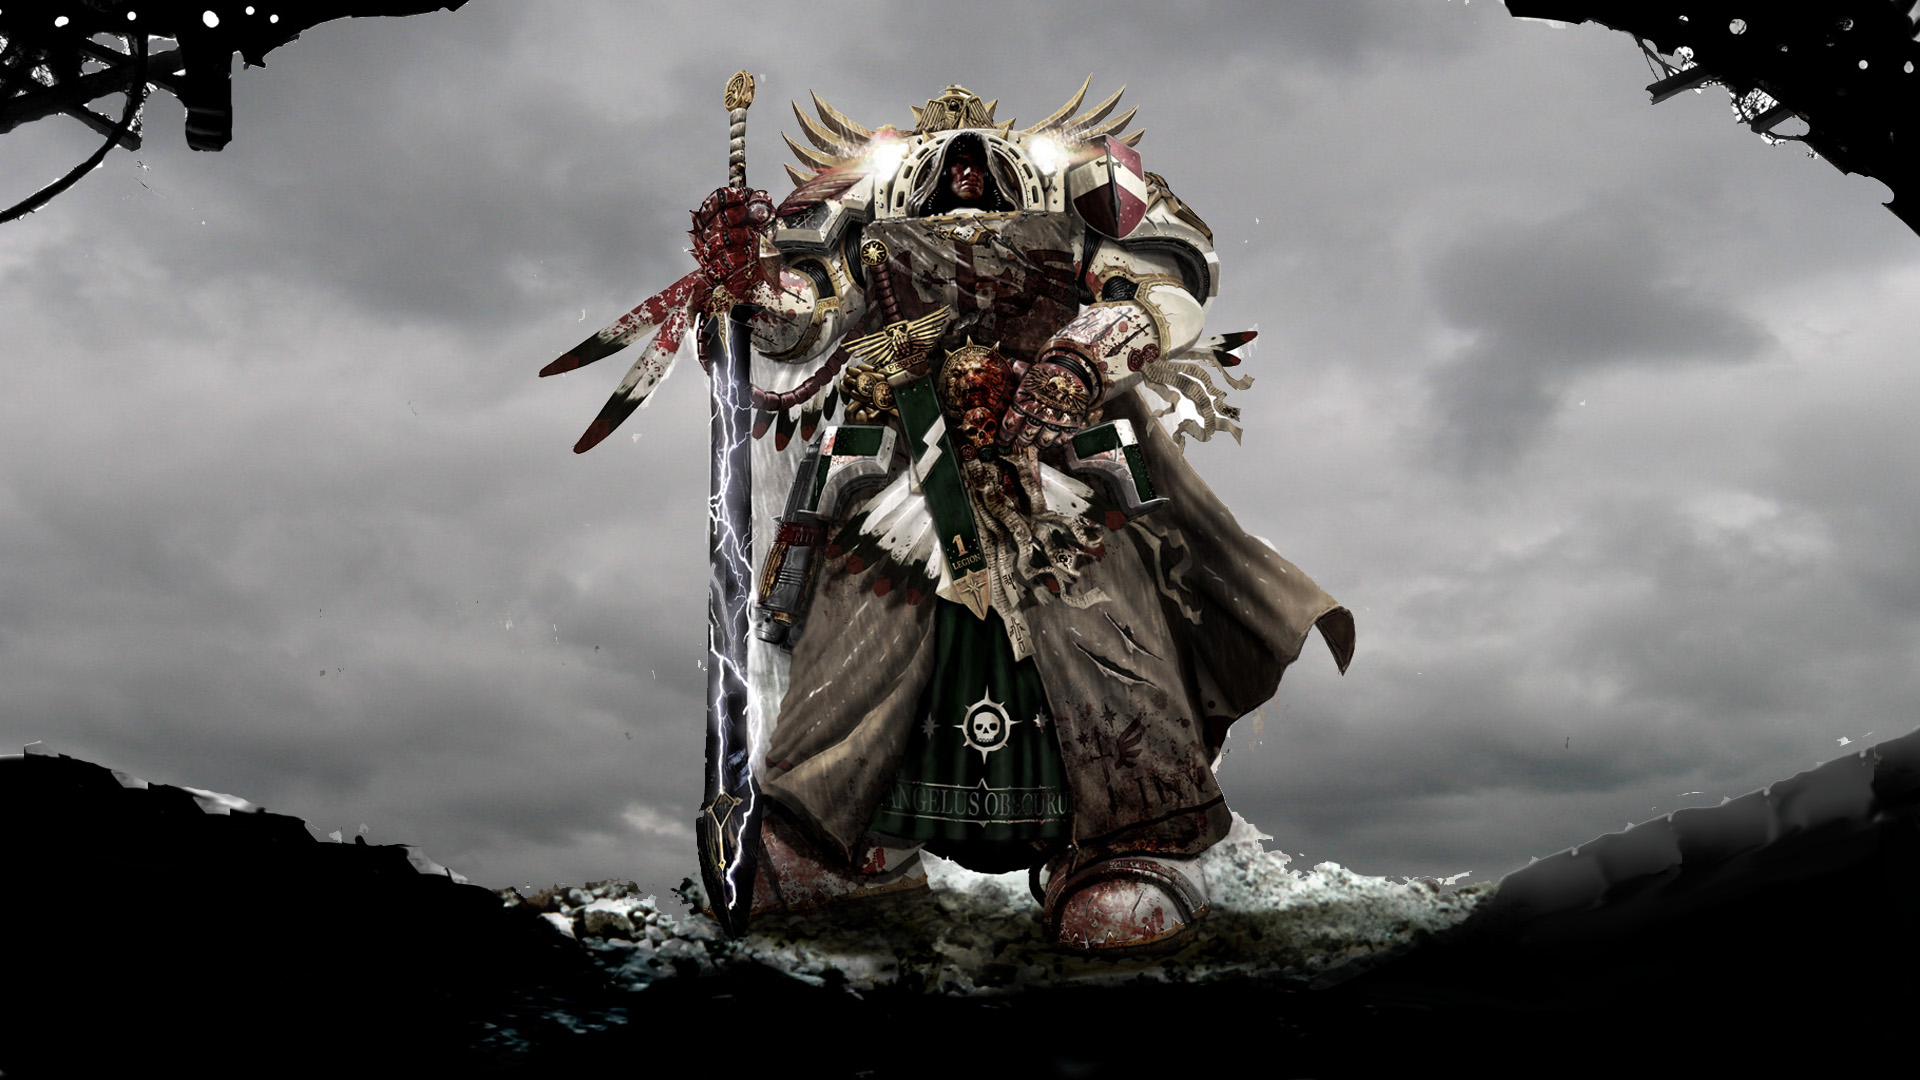 warhammer wallpaper iphone